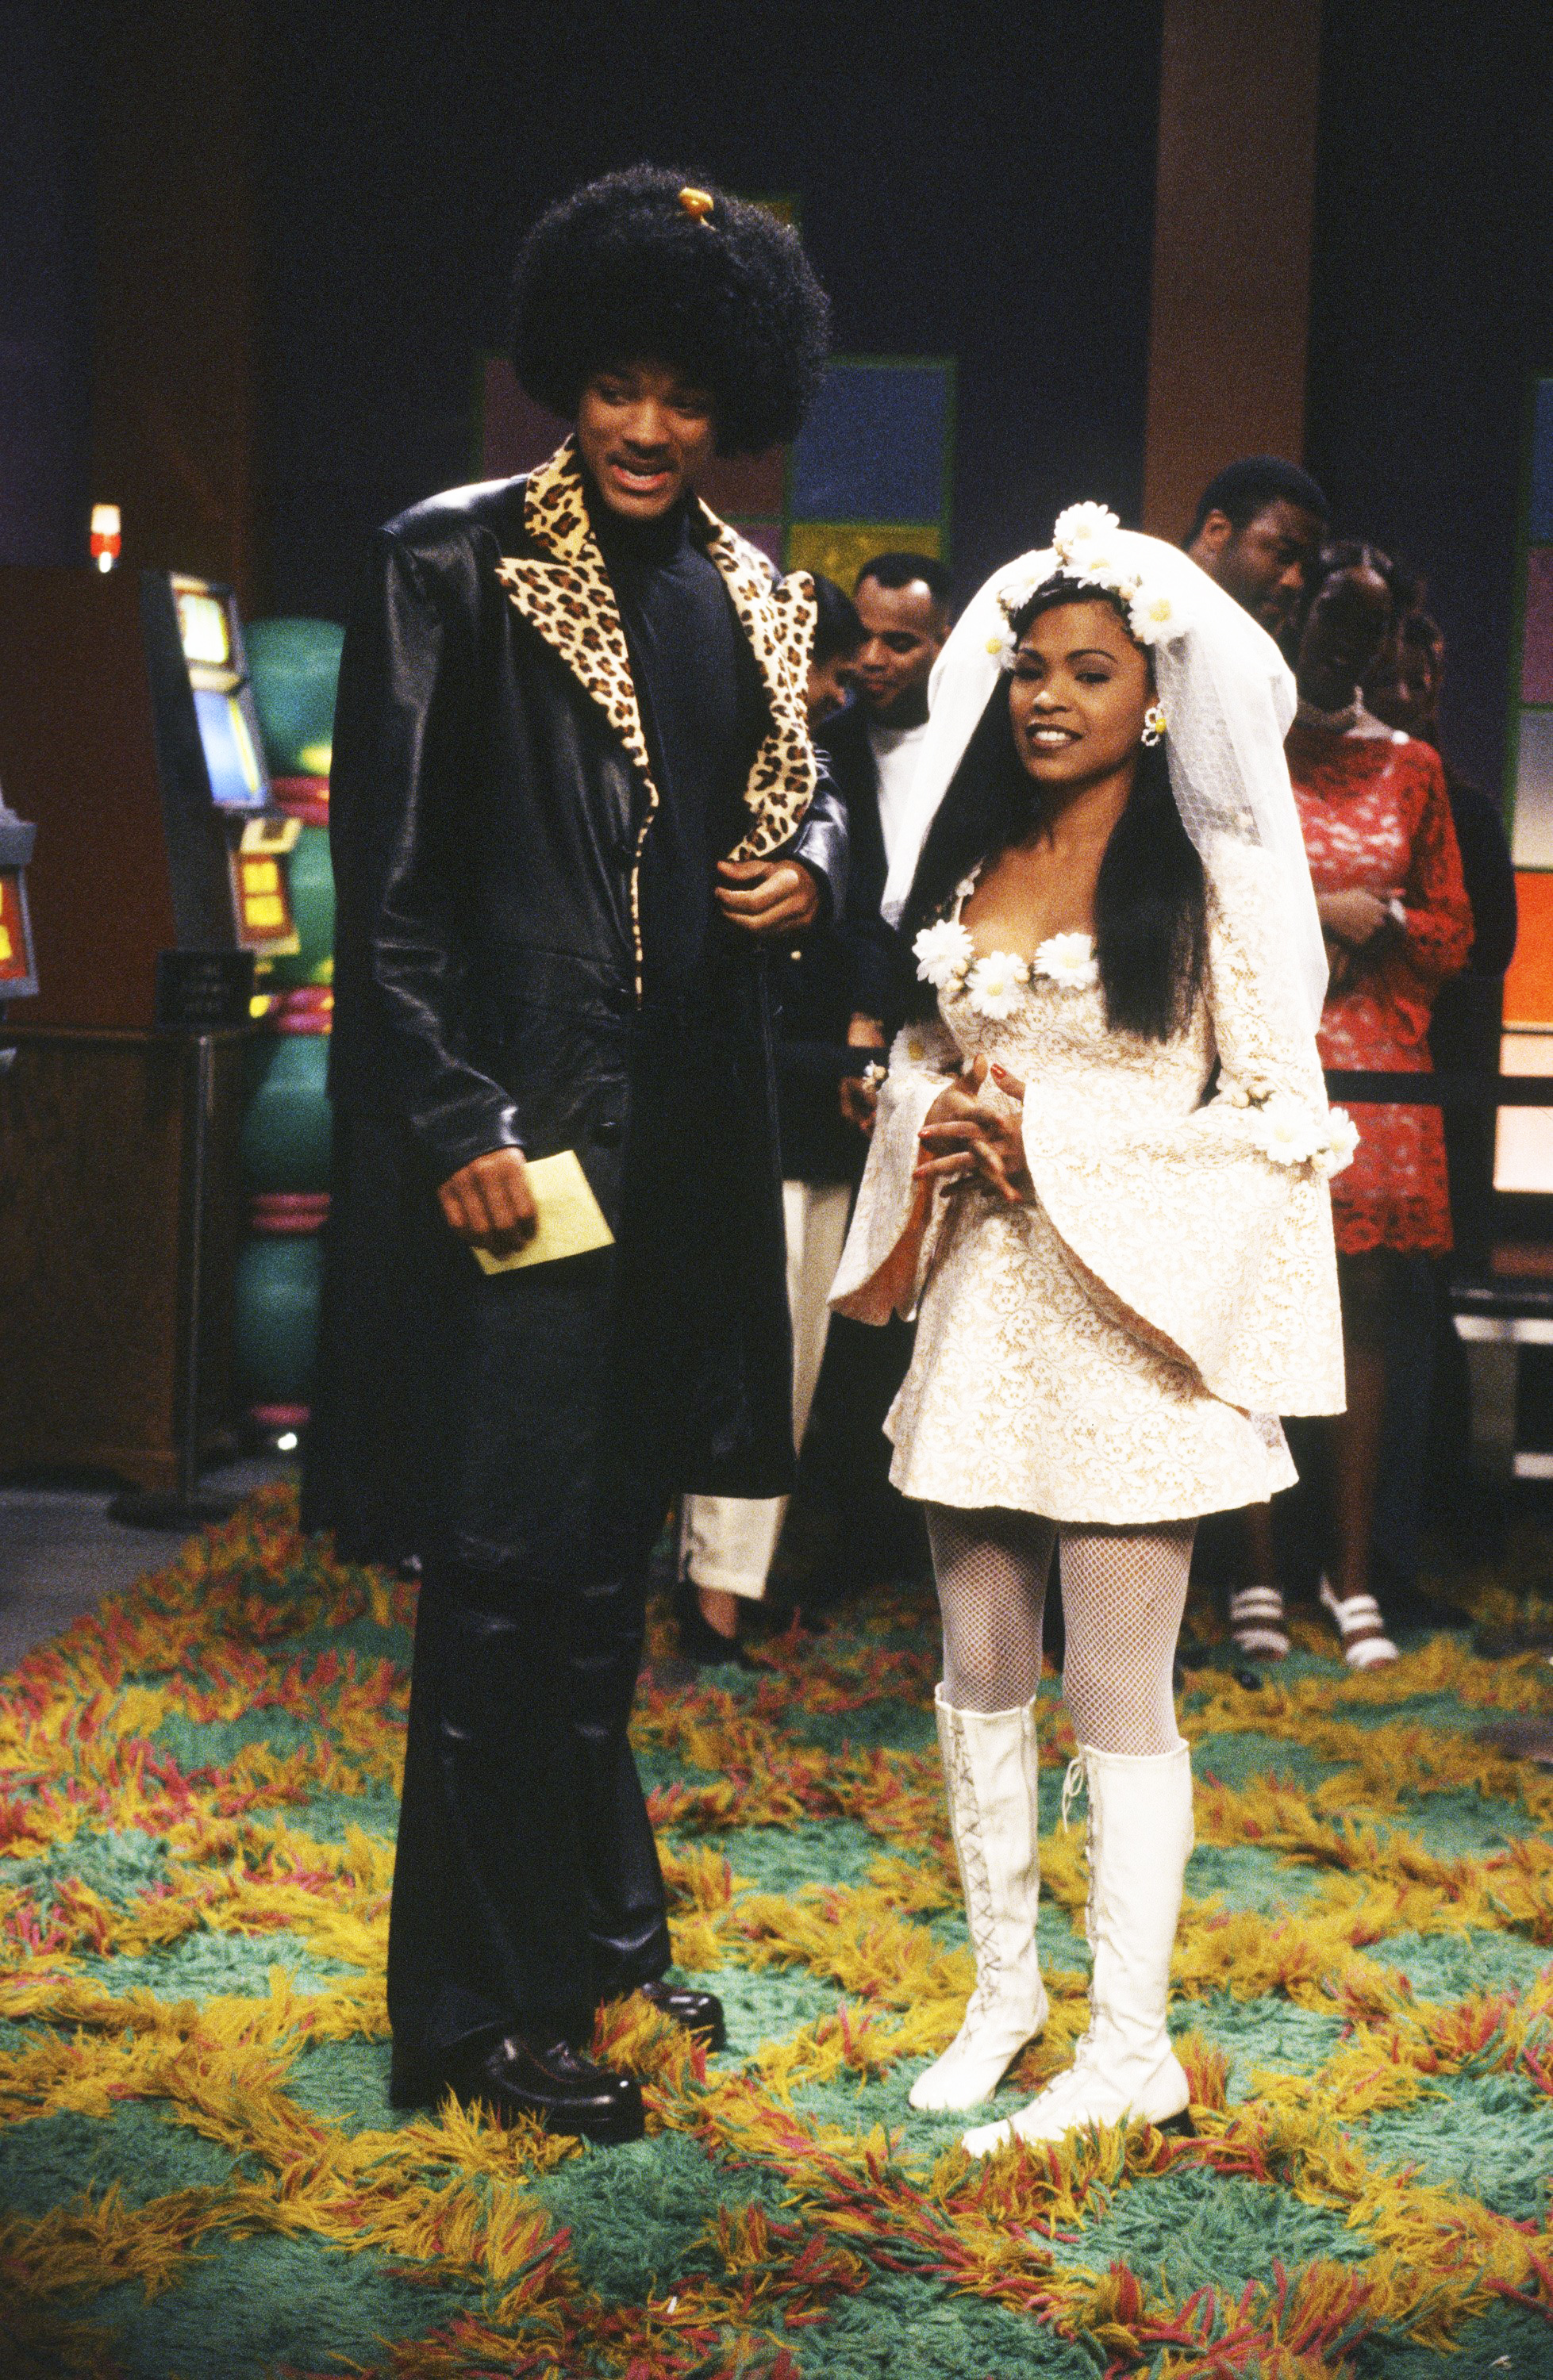 Will & Lisa, The Fresh Prince of Bel-Air.